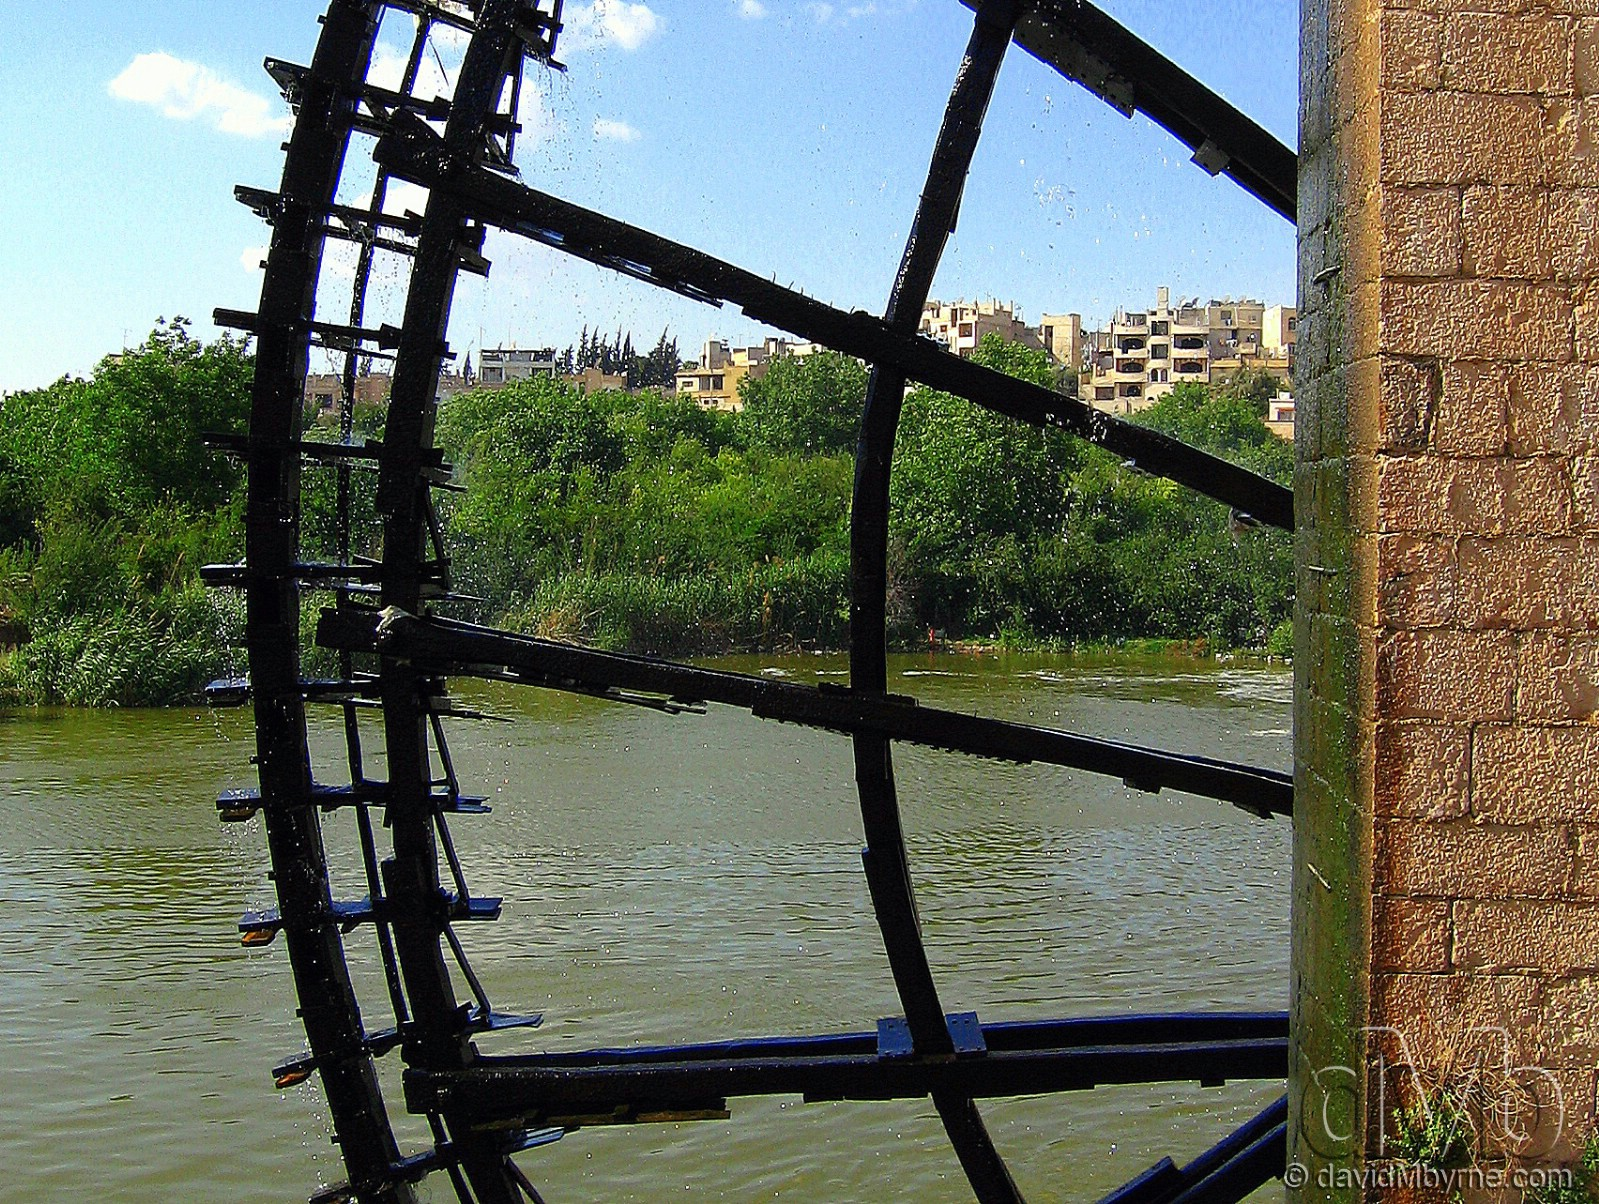 One of the 17 remaining norias ('wheels of pots') on the Orontes river in Hama, Syria. May 6th, 2008.